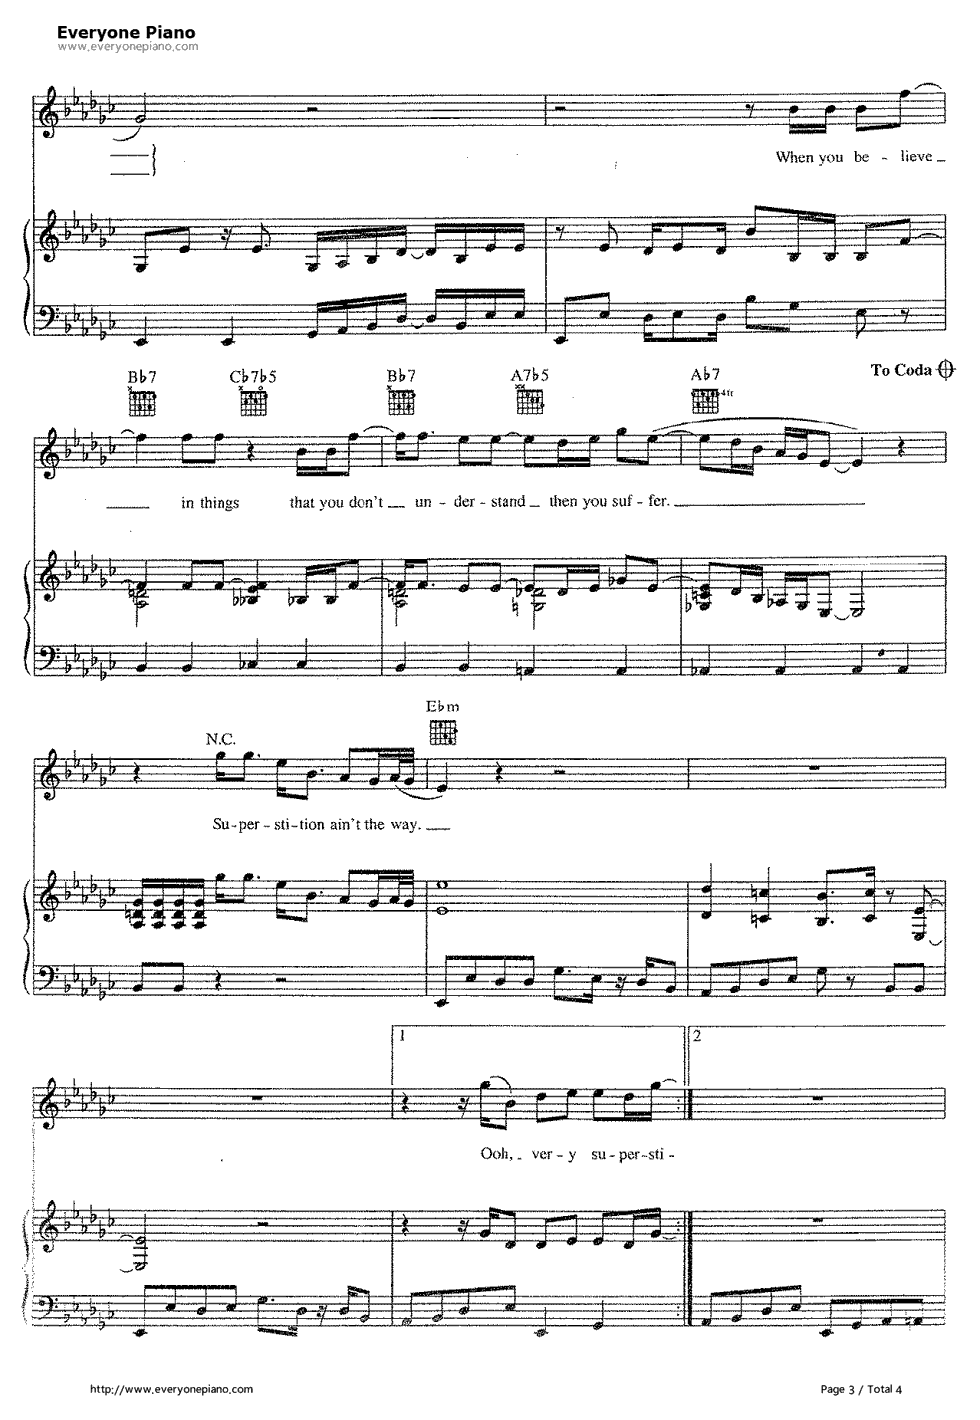 Superstition-Stevie Wonder Stave Preview 3- Free Piano Sheet